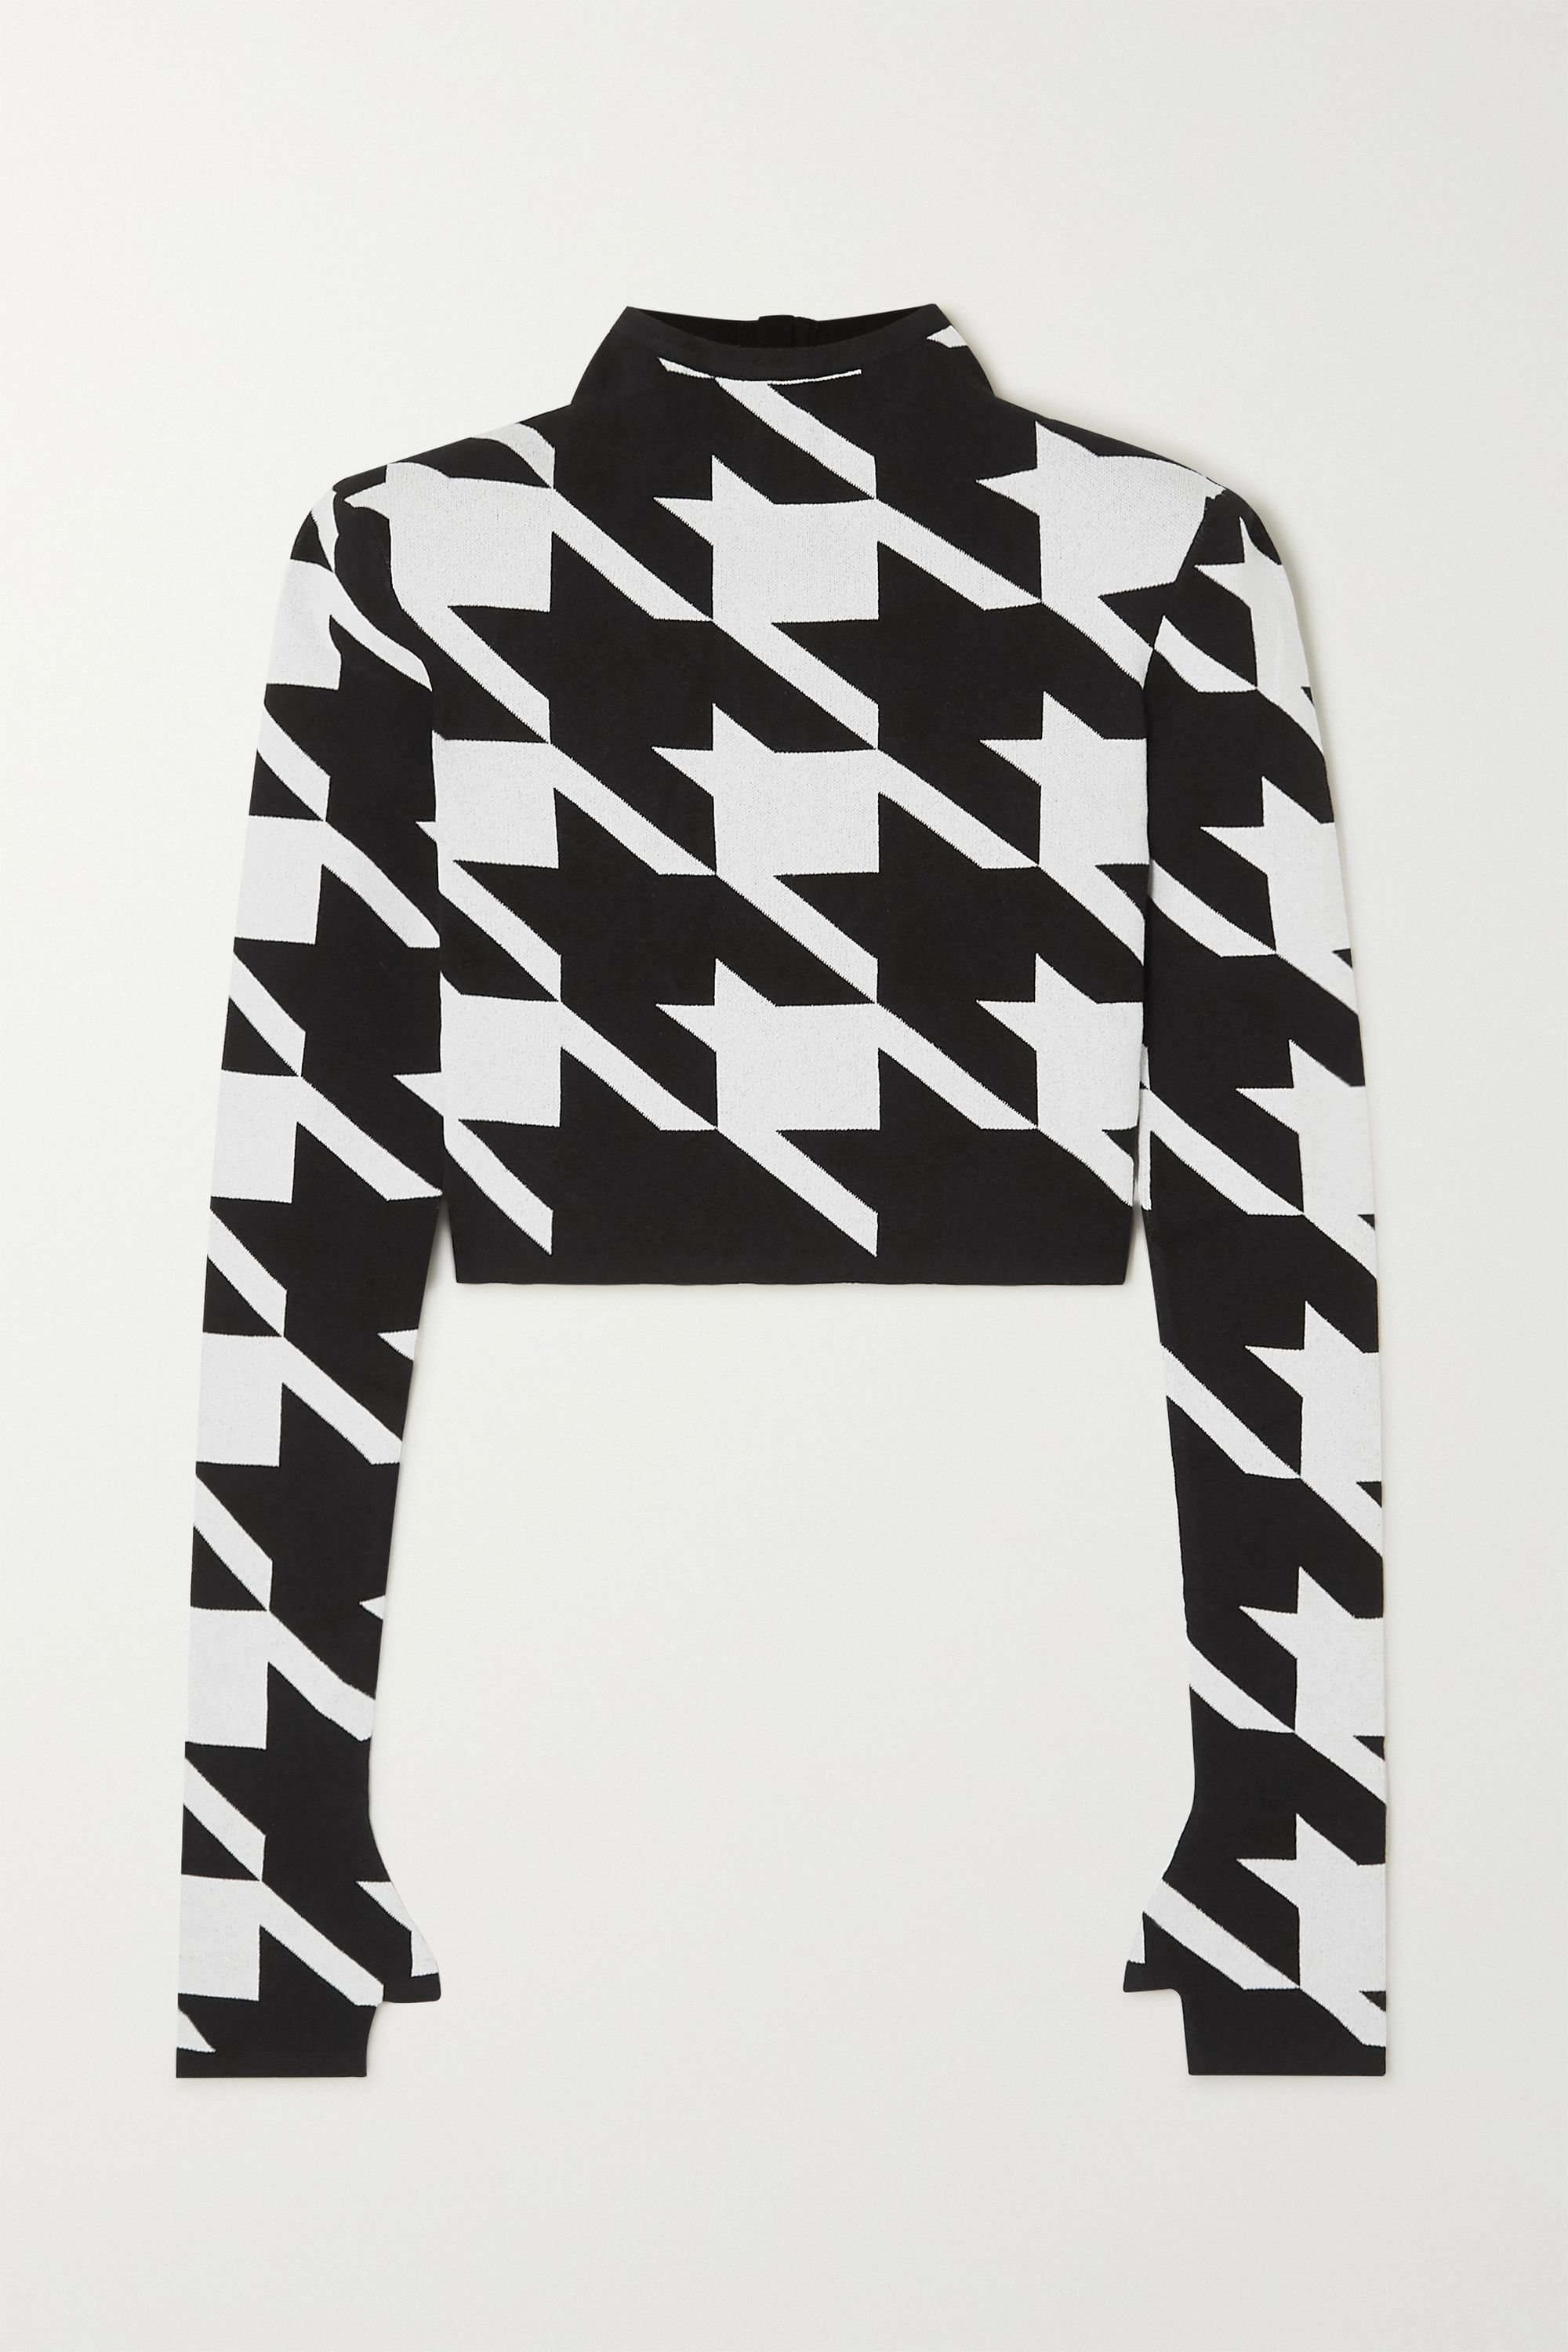 Balmain Houndstooth jacquard-knit sweater